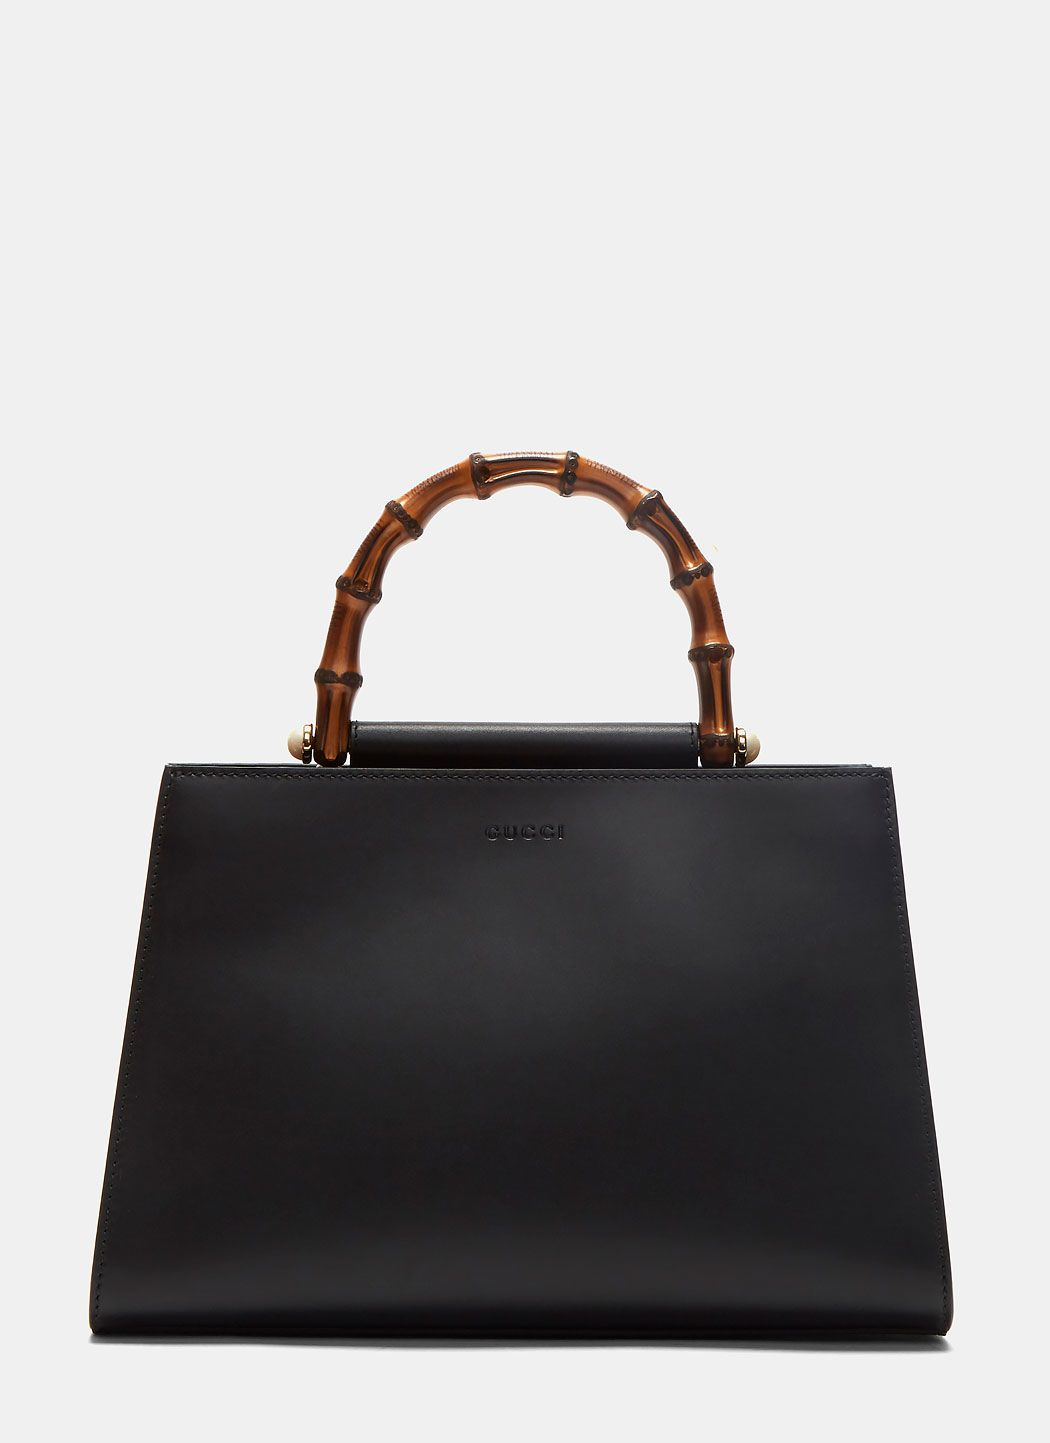 1136c3cdd46 GUCCI Women S Angel Nymphaea Leather Top Handle Bag In Black.  gucci  bags  shoulder  bags  hand bags  suede  lining